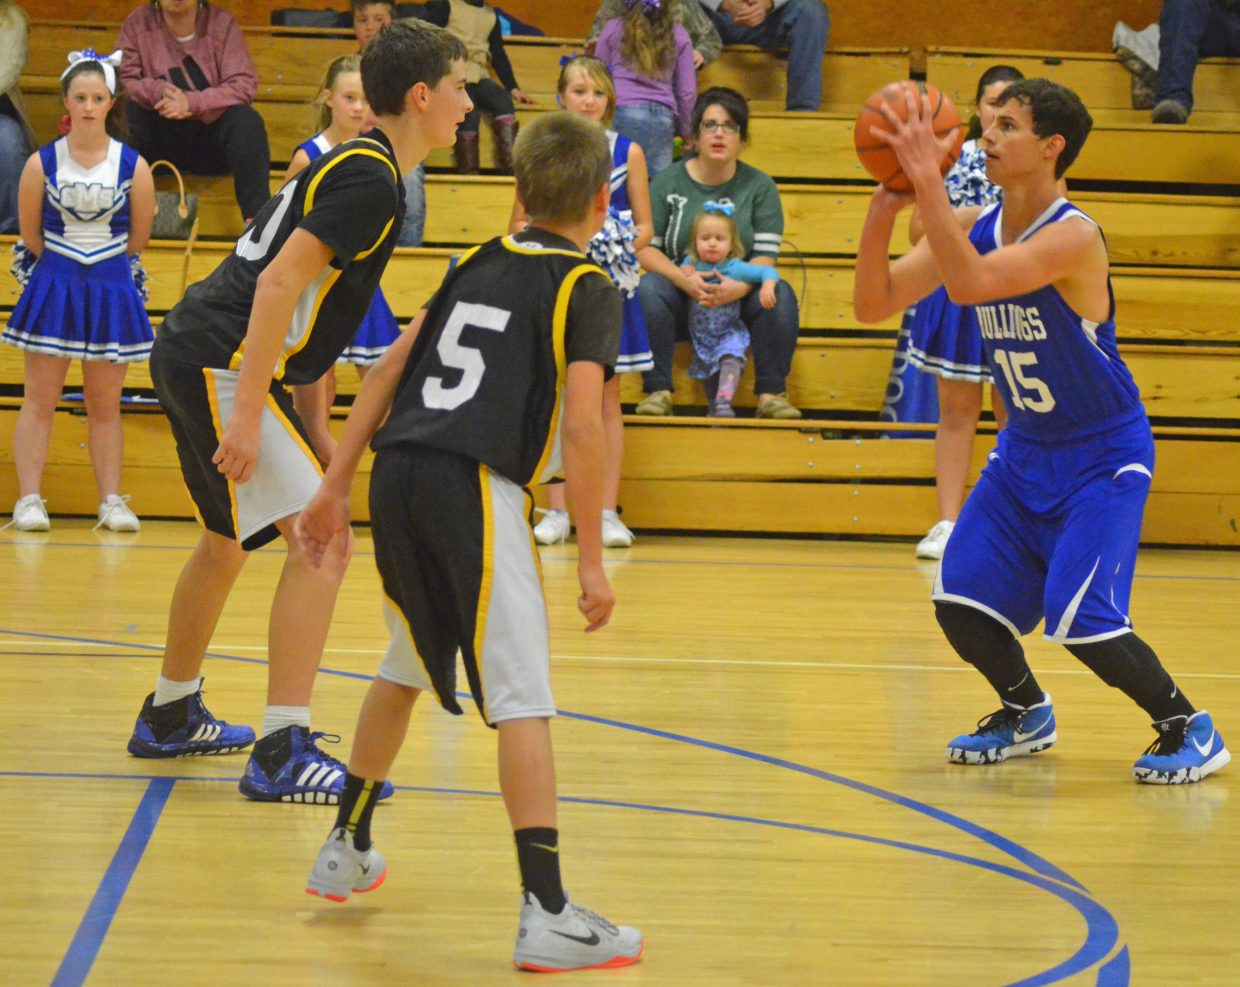 Jerod Chacon considers shooting for three during the Craig Middle School eighth-grade boys basketball A-Team's Thursday game against Meeker. The Bulldogs won, 29-27, against the Cowboys.